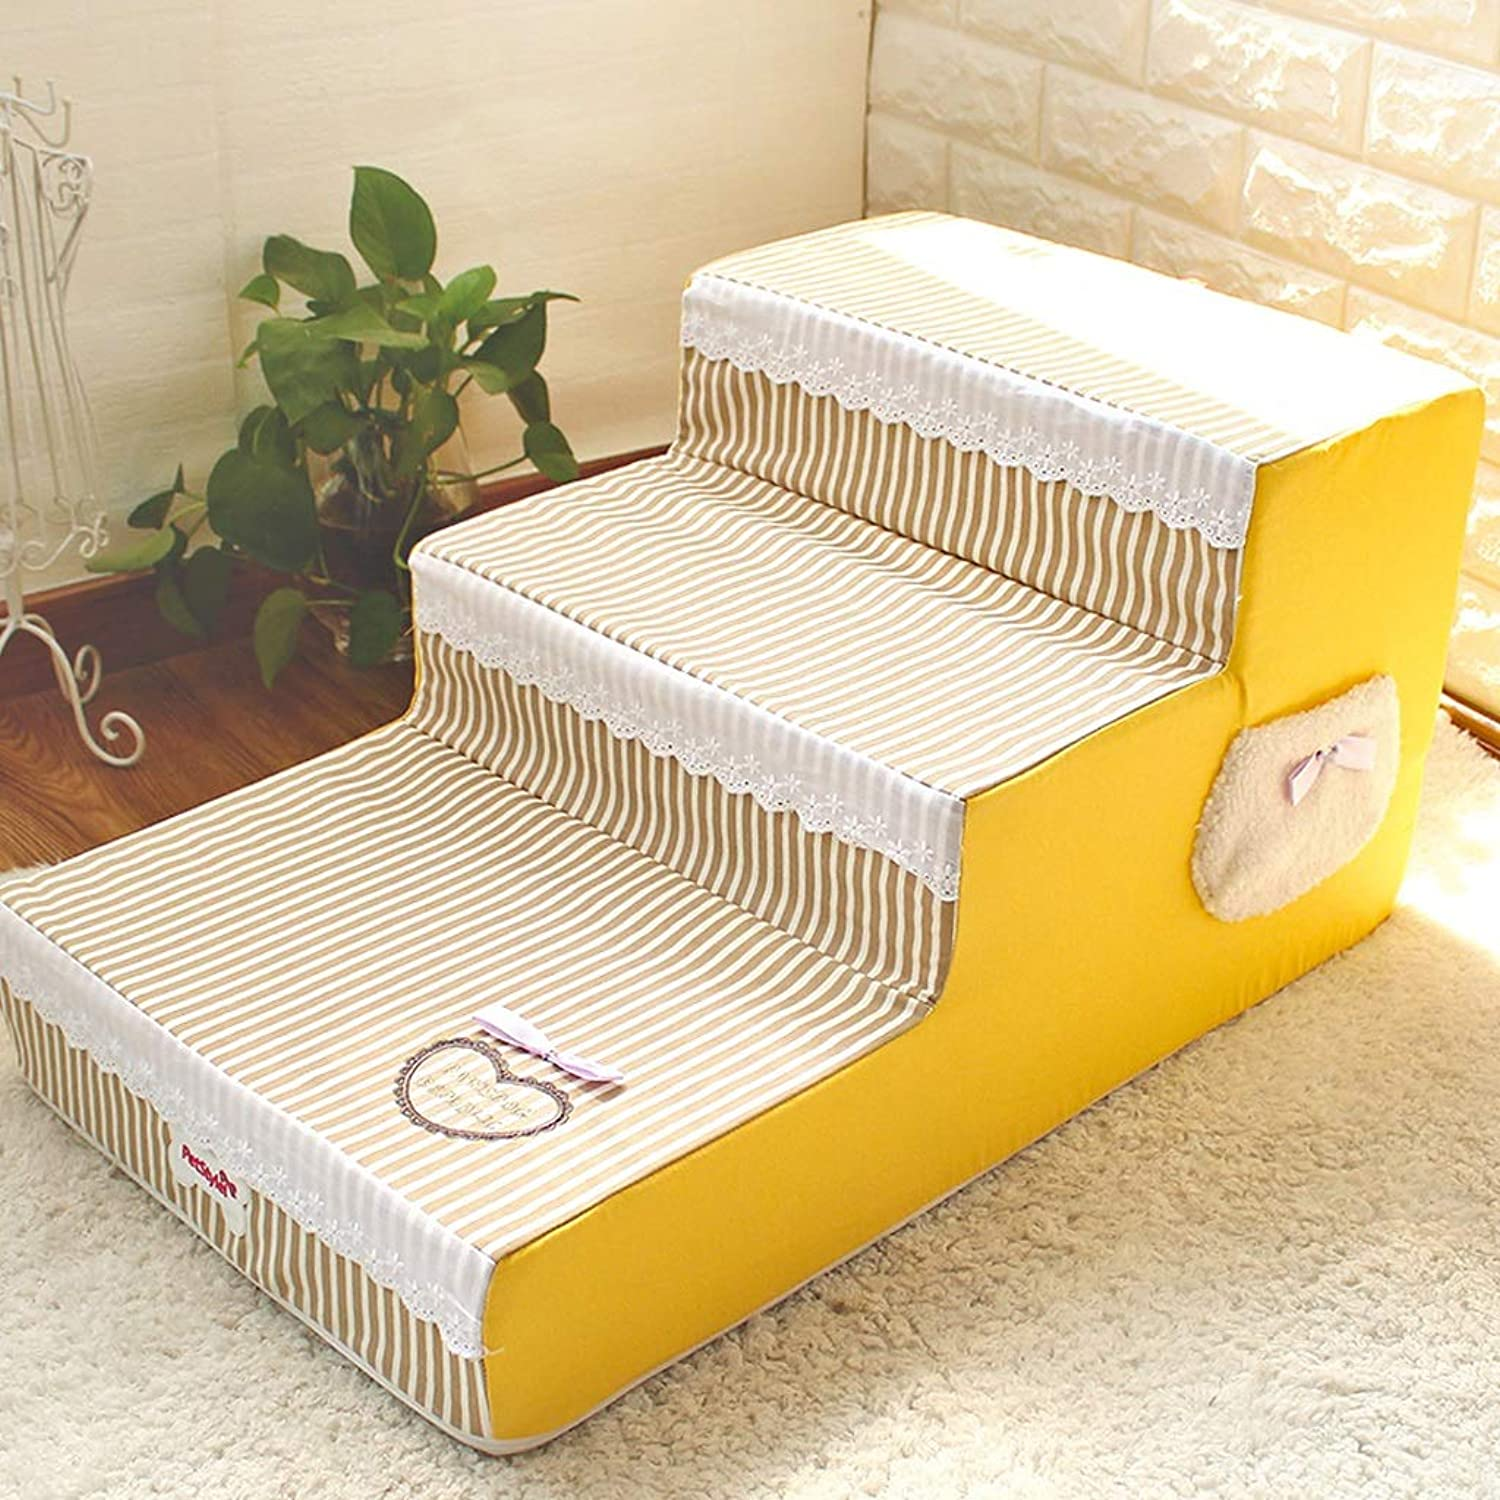 NYDZDM Pet stairs Dog Stairs Sponge Stairs Small Dogs Sofa Bedside Stairs Detachable Ladder, Yellow